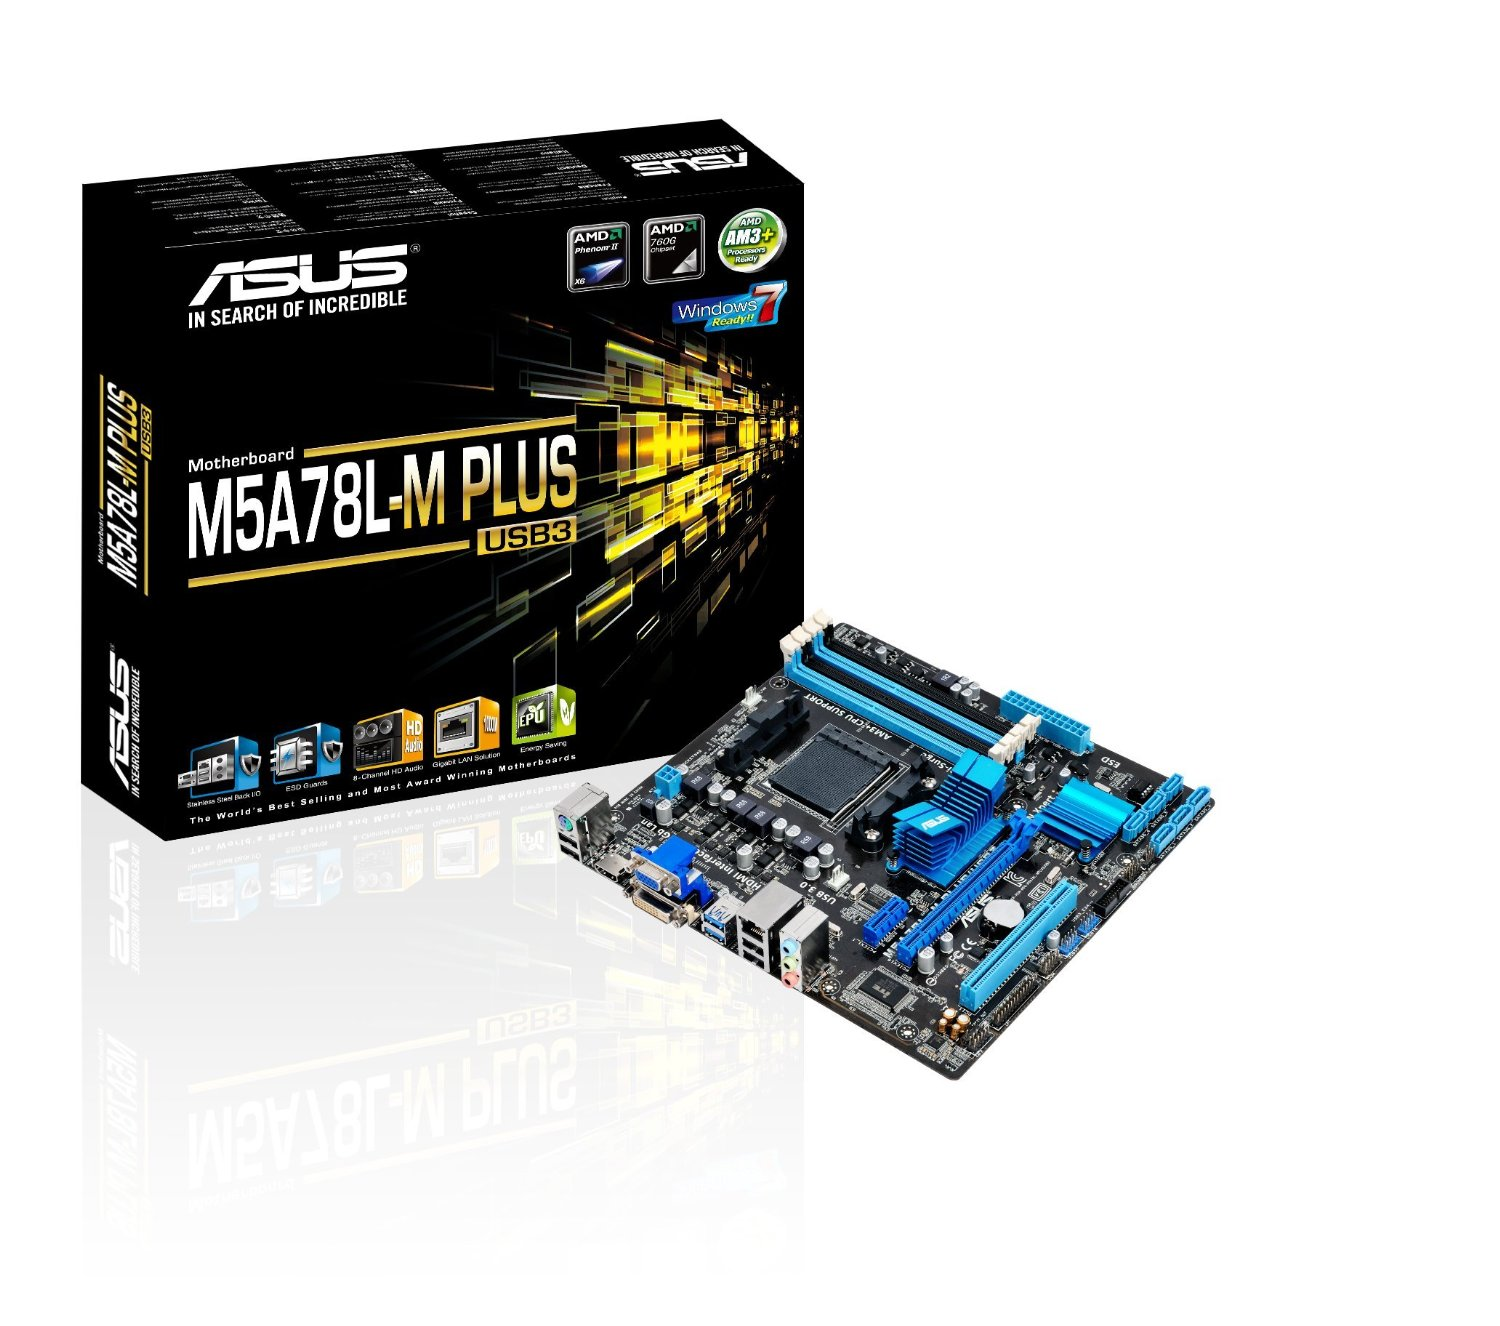 asus m5a78l m plus usb3 am3 ddr3 hdmi 760g microatx motherboard 97 asus m5a78l m plus usb3 am3 ddr3 hdmi 760g microatx motherboard  at mr168.co